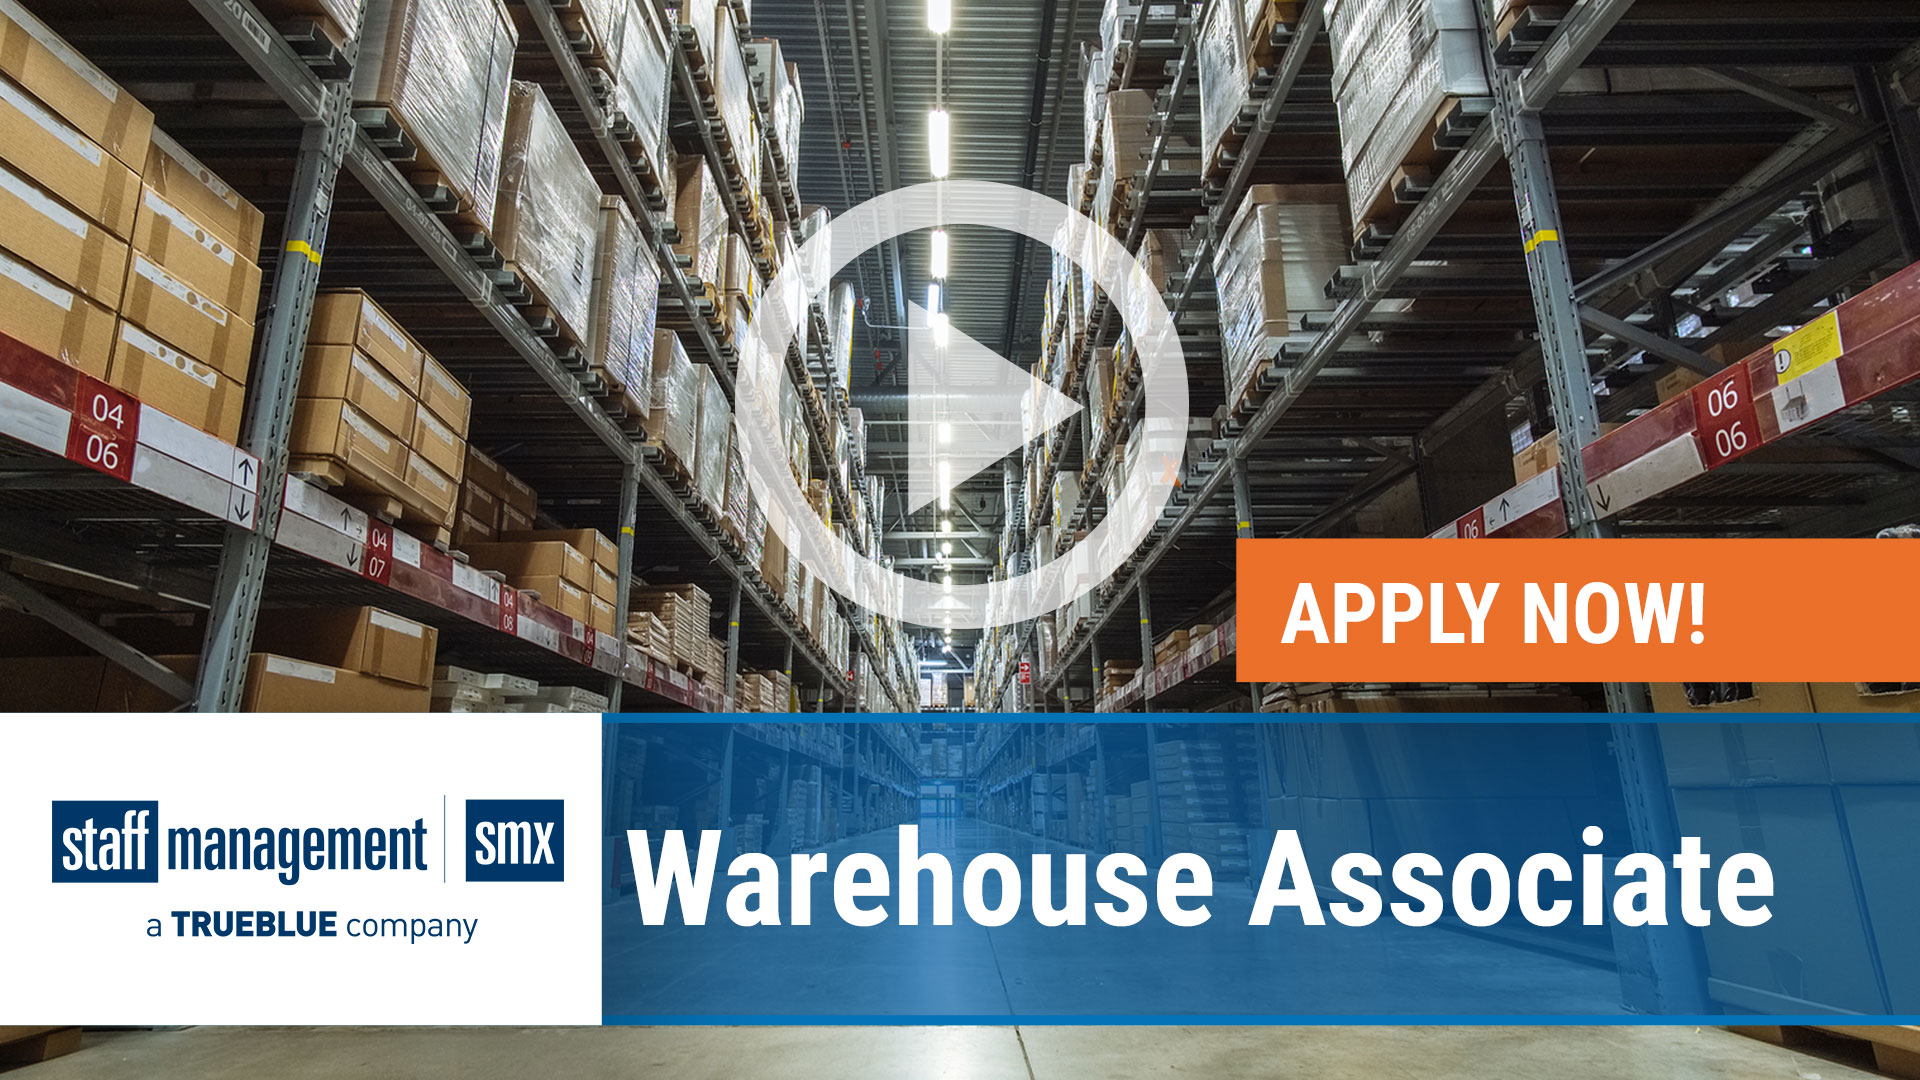 Watch our careers video for available job opening Warehouse Associate in USA